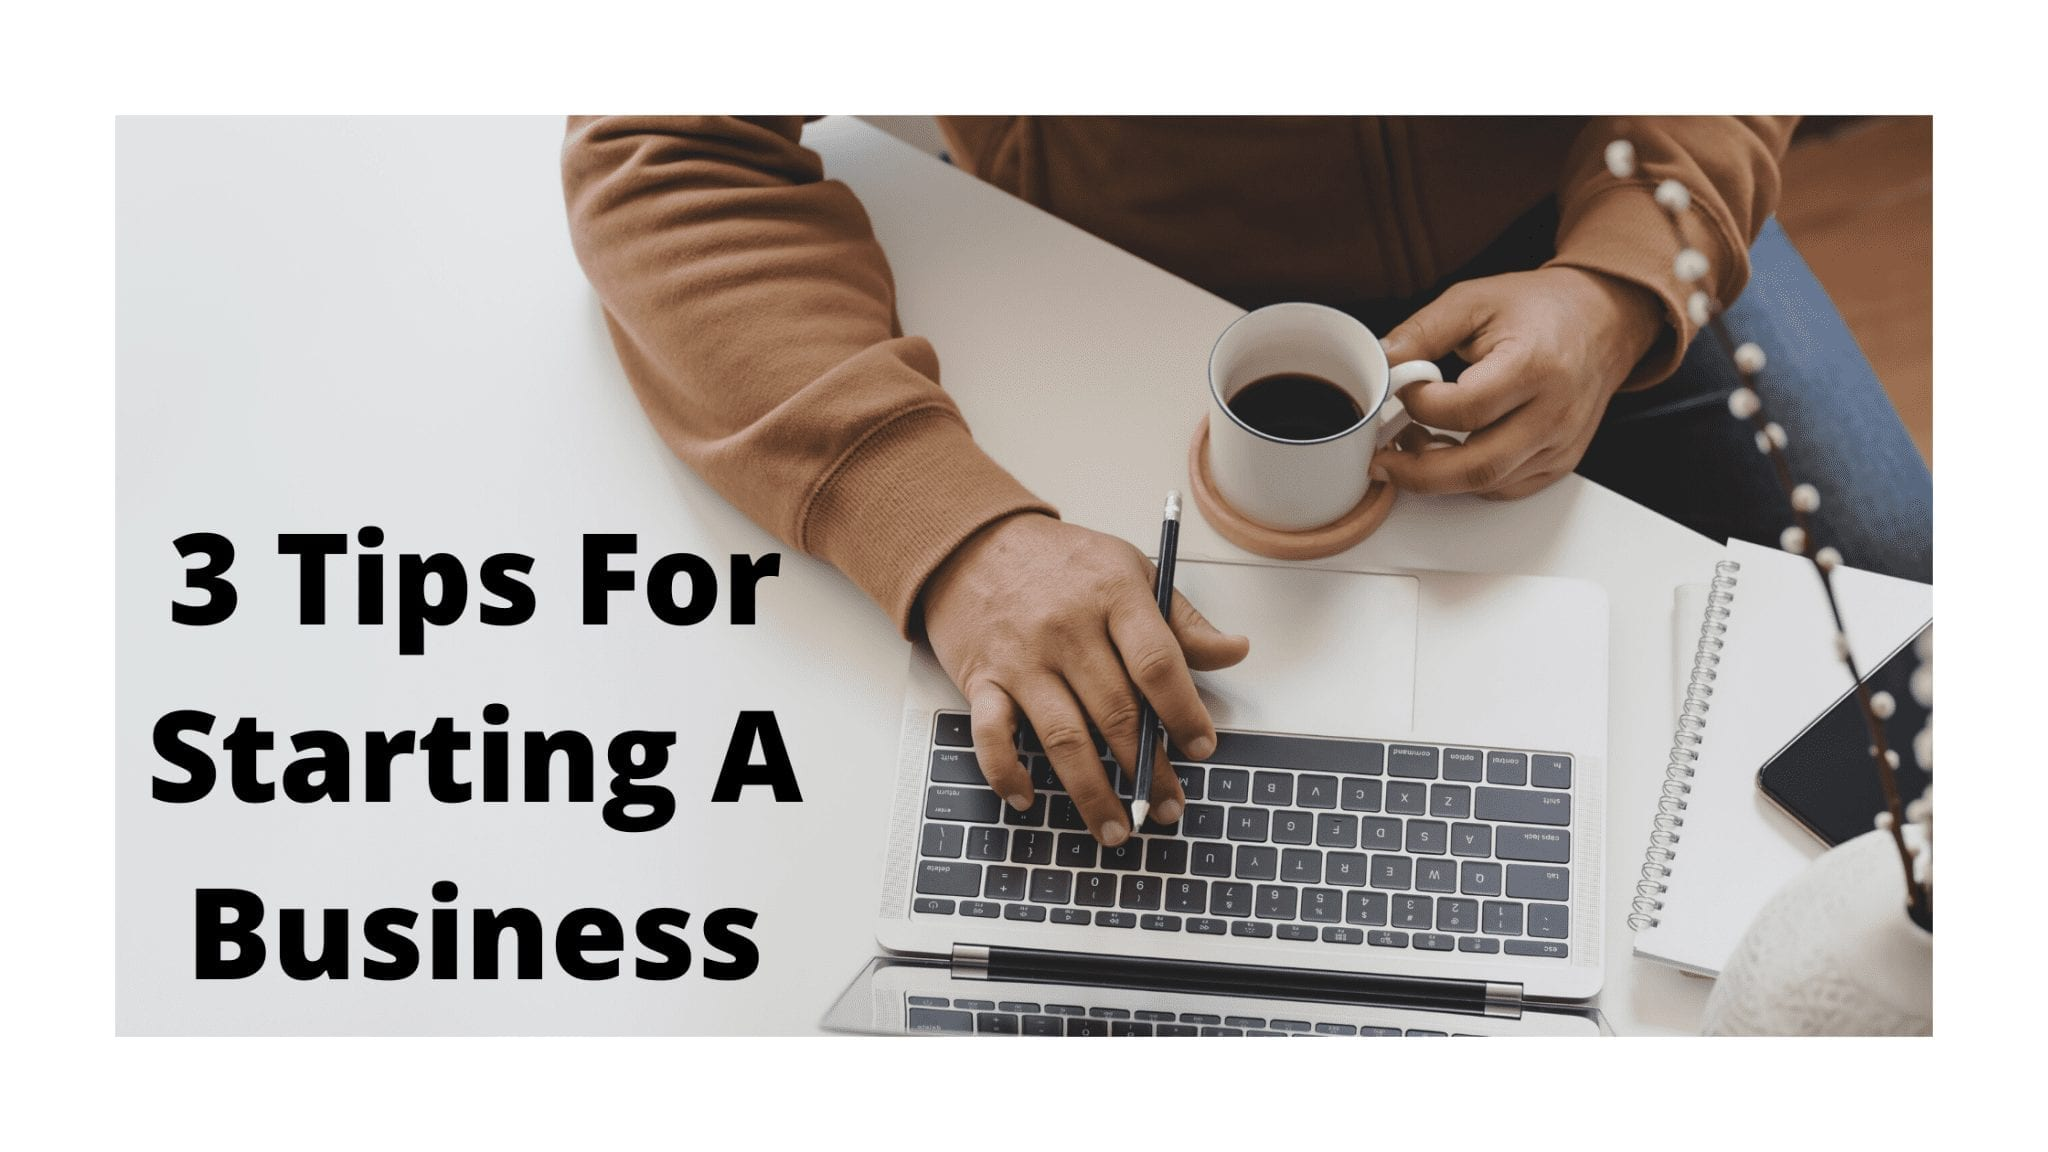 3 Tips For Starting A Business